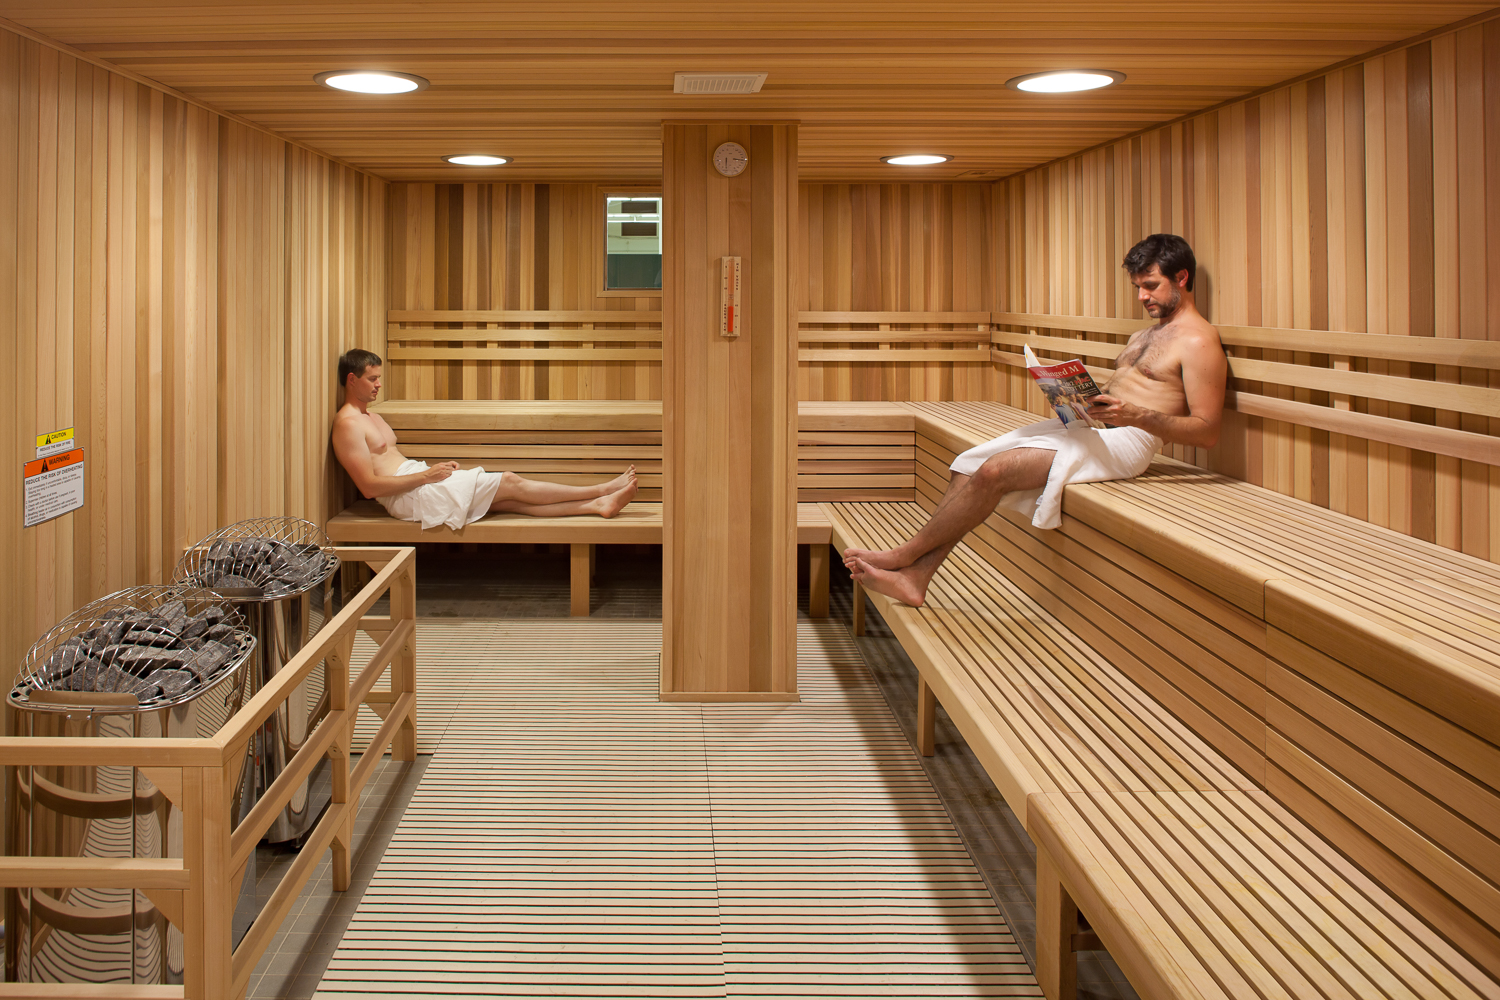 26-MAC-MensLR-JoshPartee-9337-sauna-people.jpg